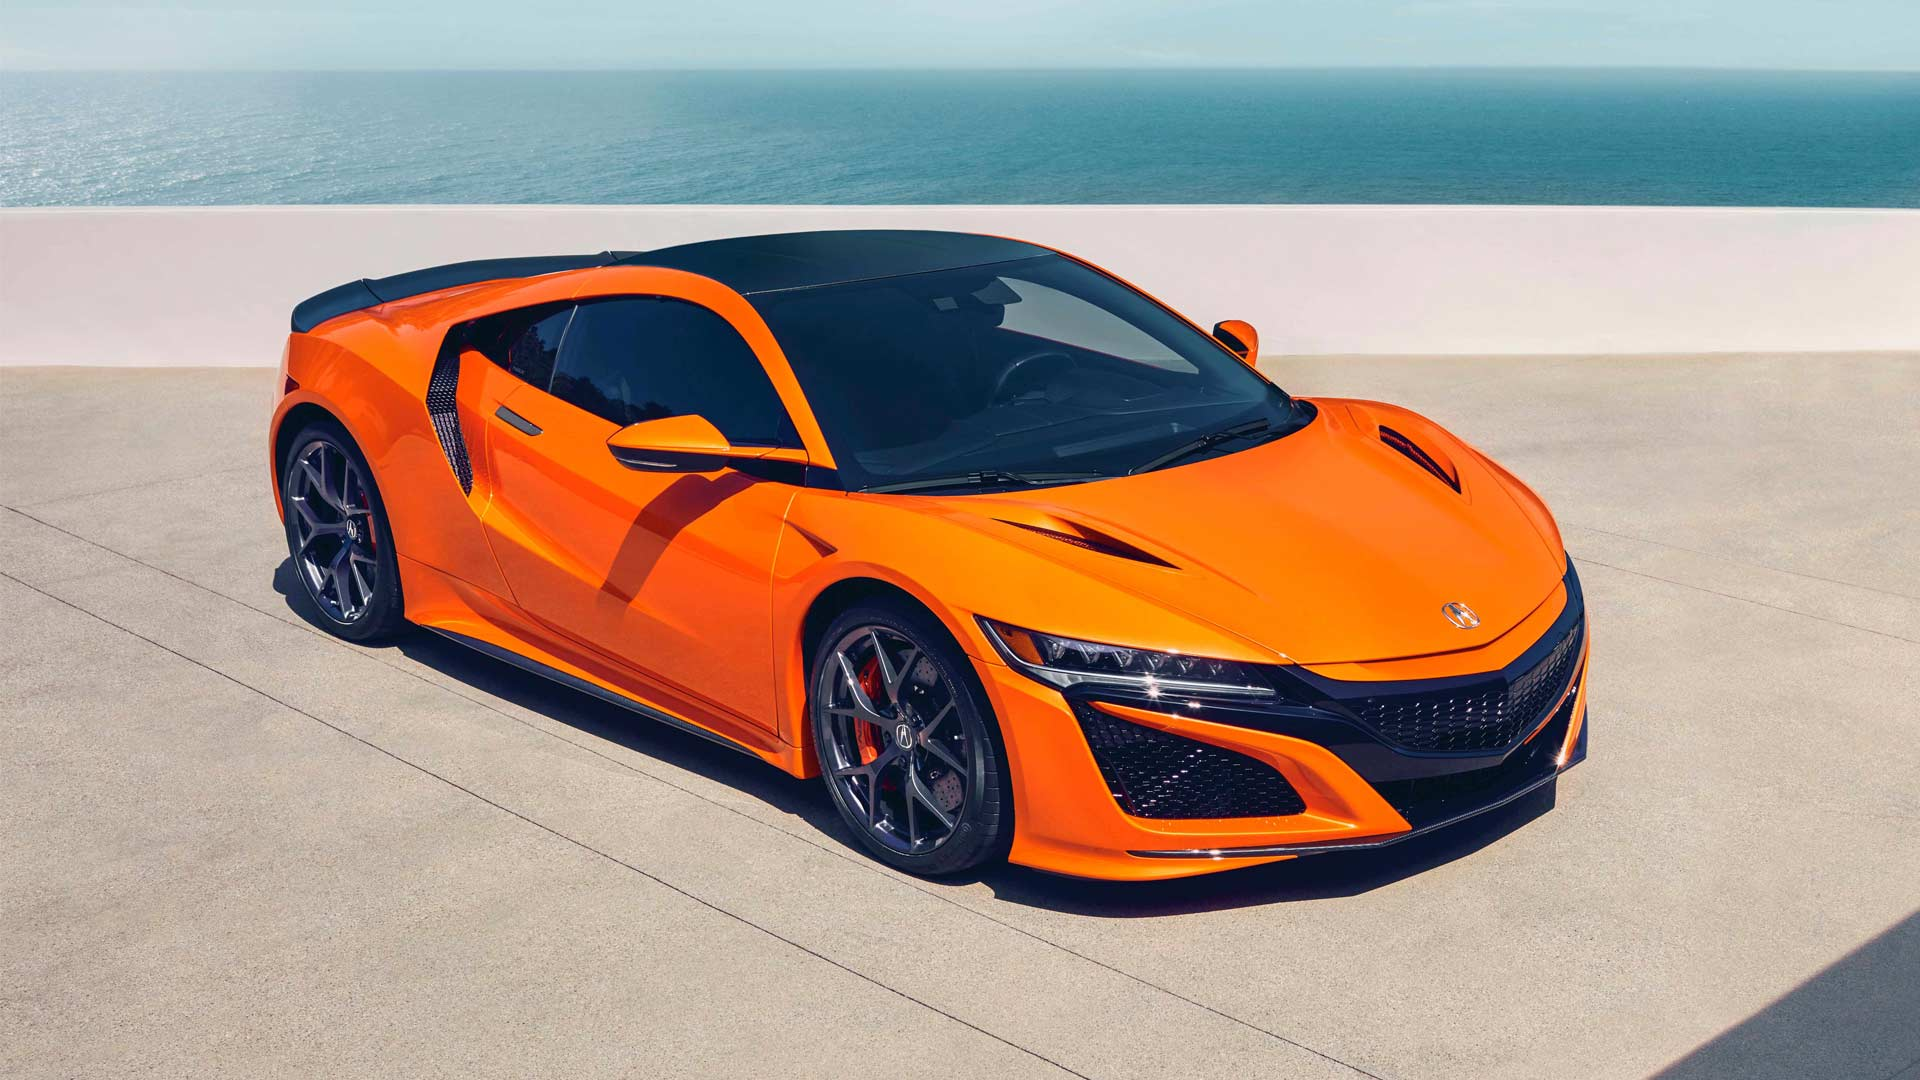 2019 Acura NSX gets drenched in Thermal Orange at Pebble Beach ...